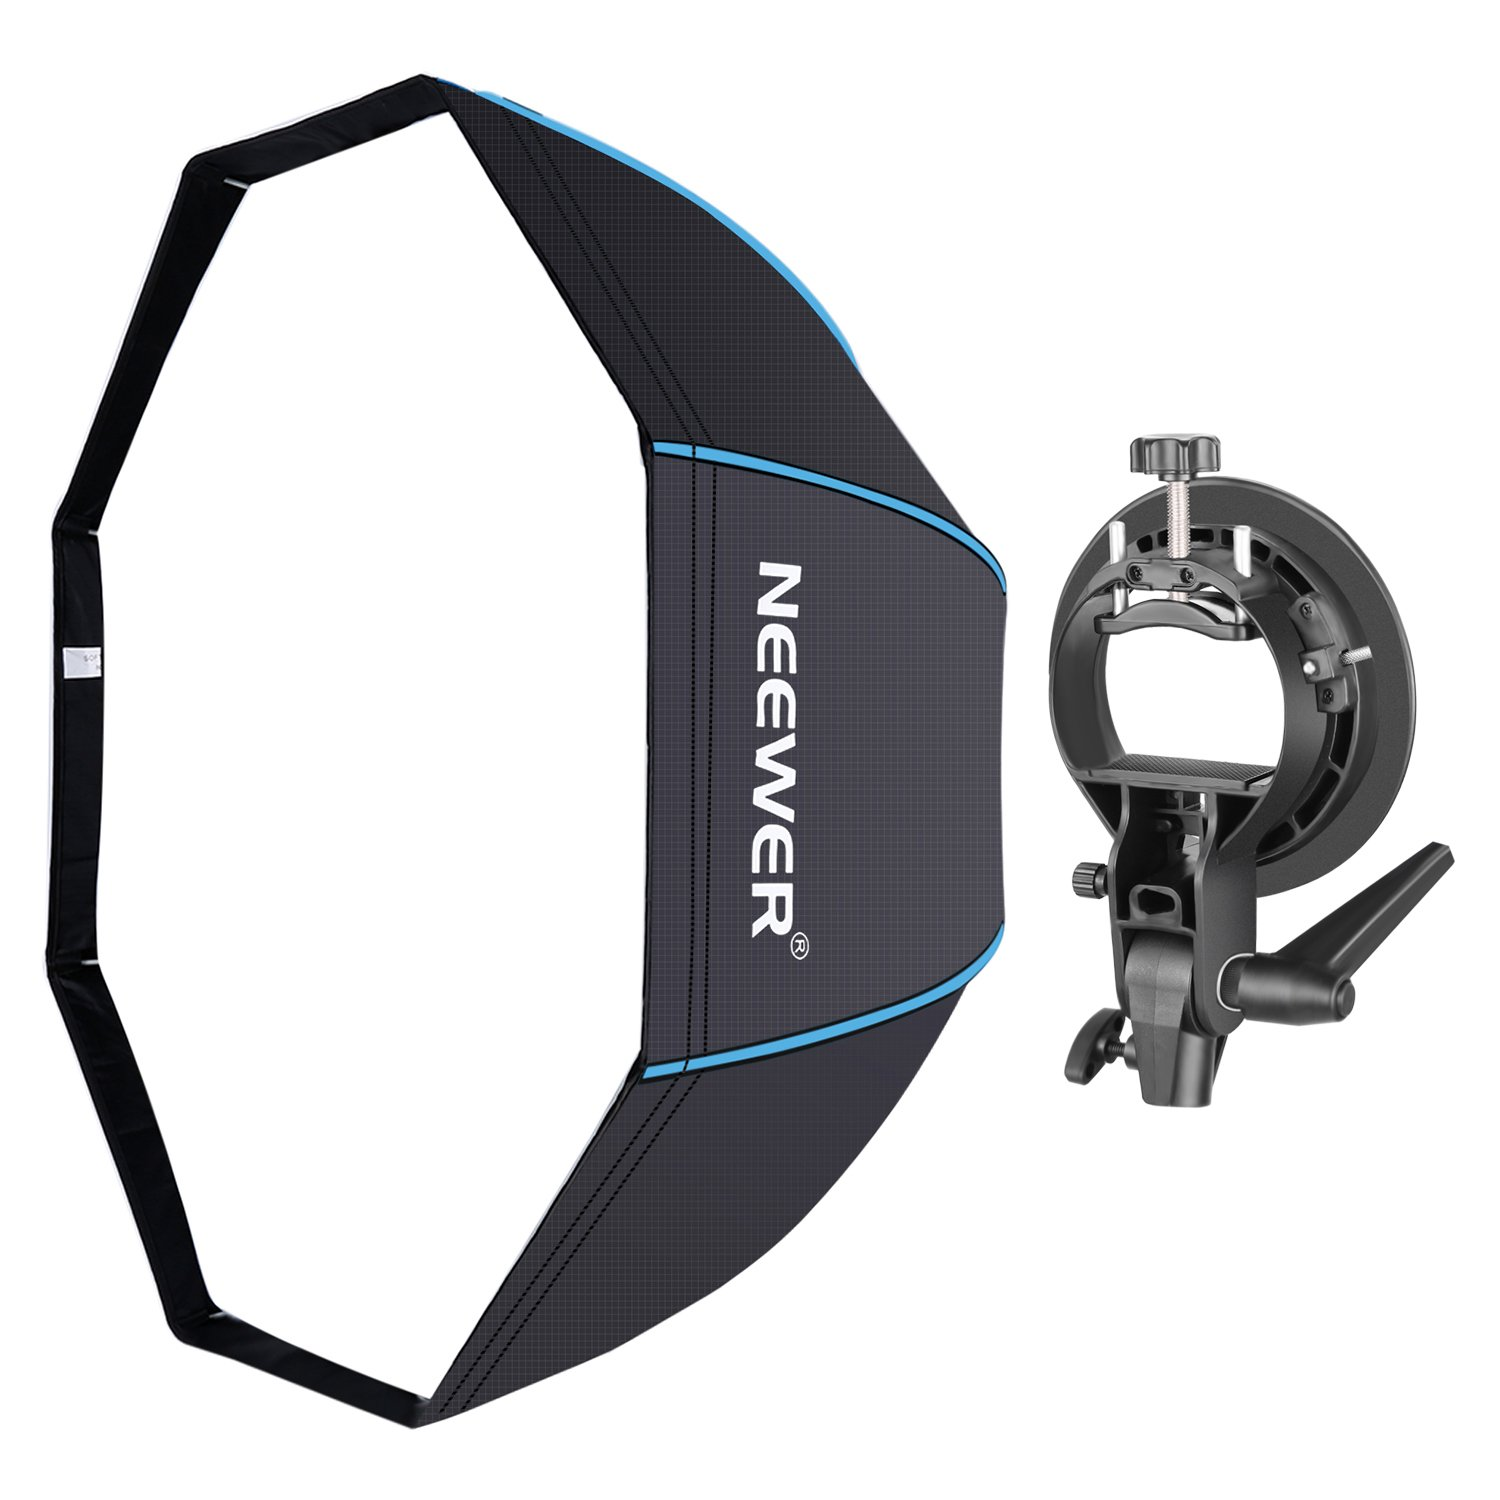 Neewer 48 inches/120 centimeters Octagonal Softbox with S-Type Bracket Holder (with Bowens Mount) and Carrying Bag for Speedlite Studio Flash Monolight, Portrait and Product Photography 90091745